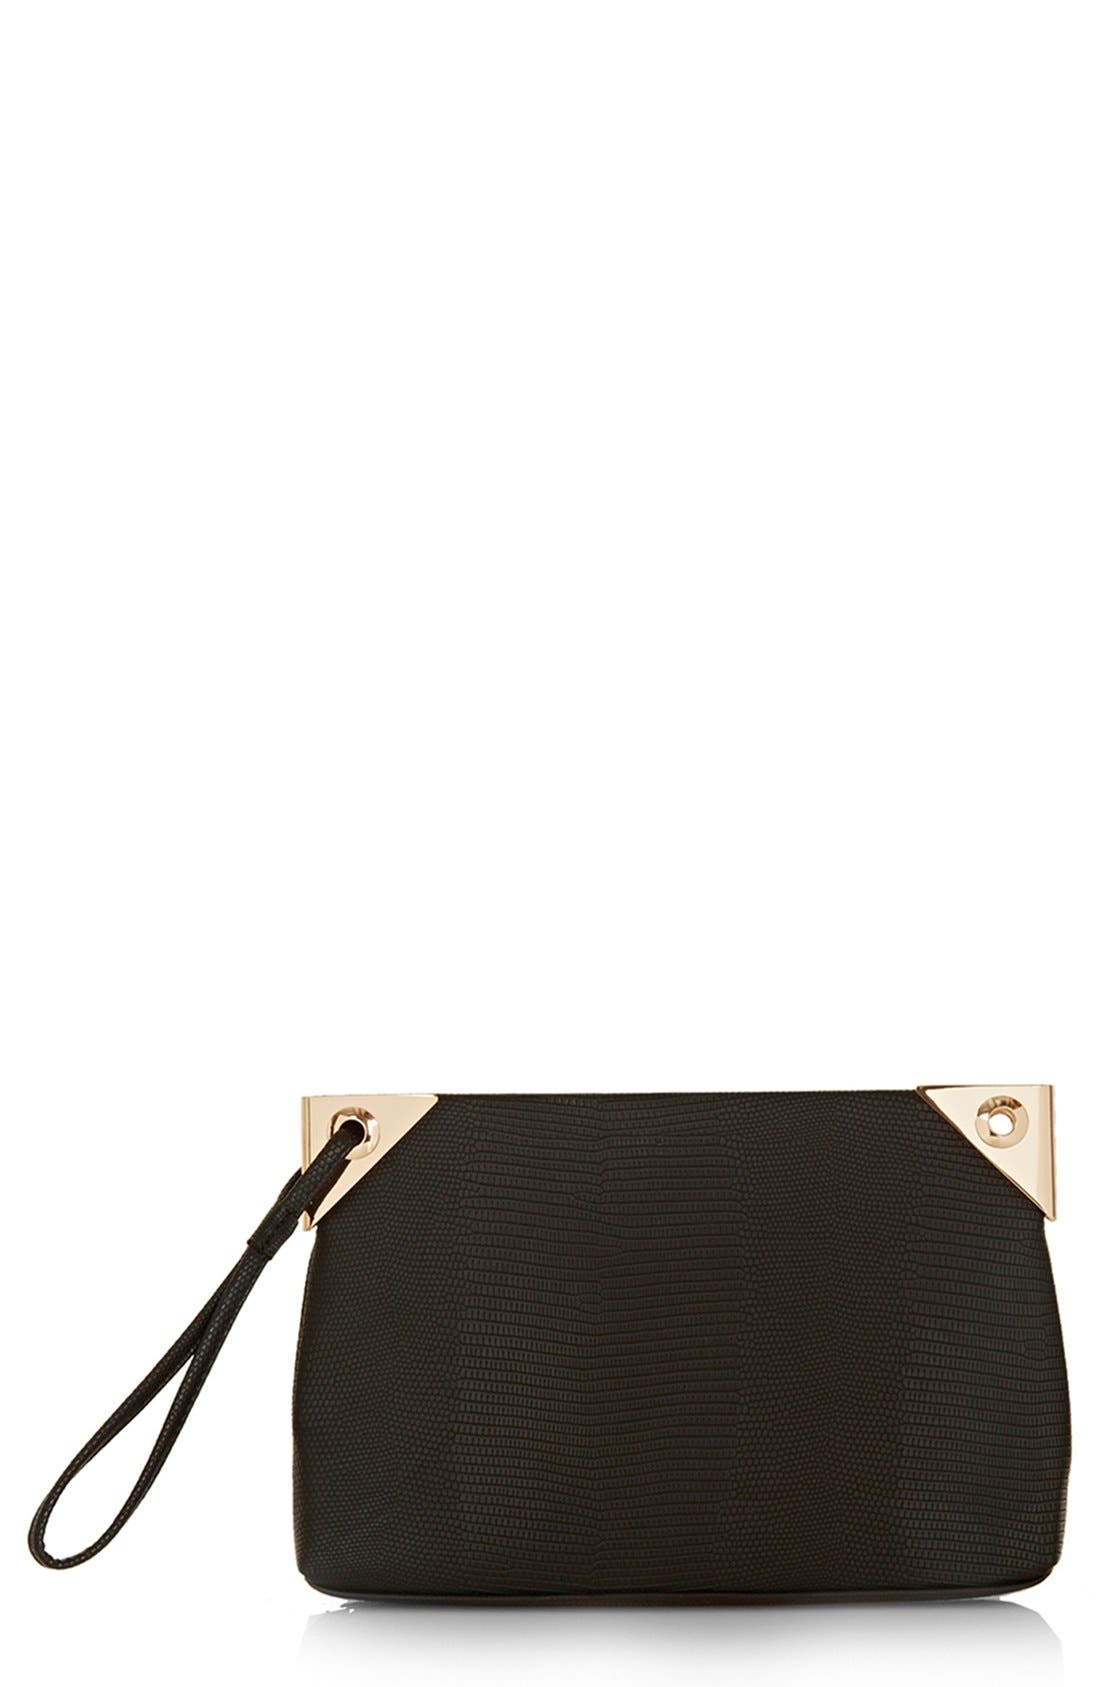 Alternate Image 1 Selected - Topshop 'Hinge' Lizard Embossed Clutch